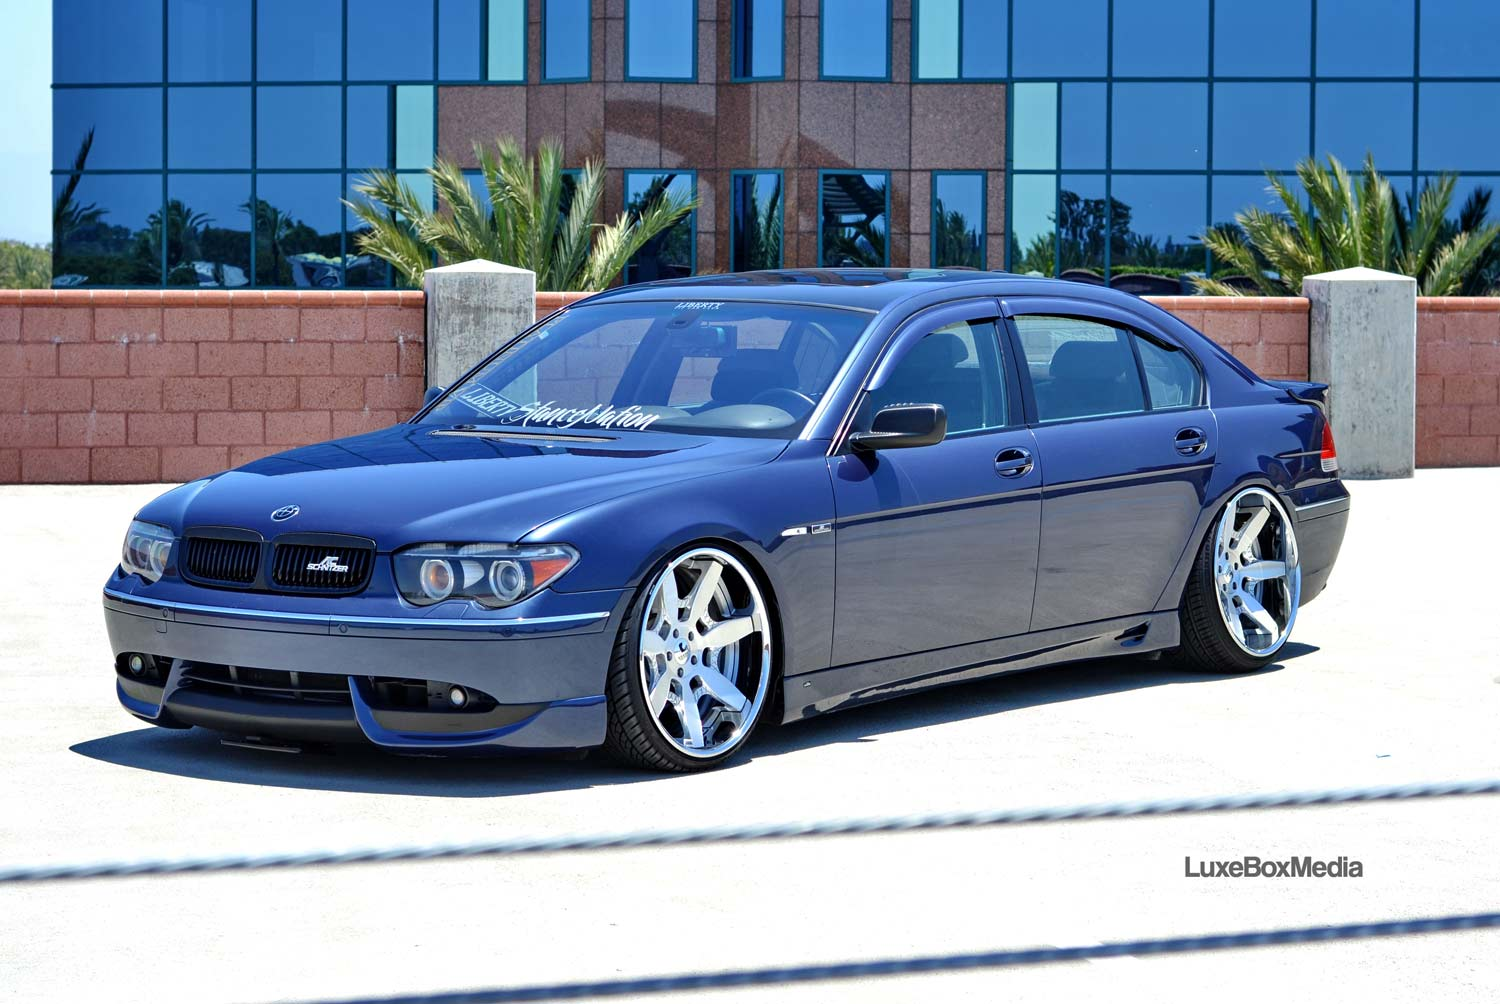 BMW E65 Fitted With 22 Inch Luxury Abstract Mador